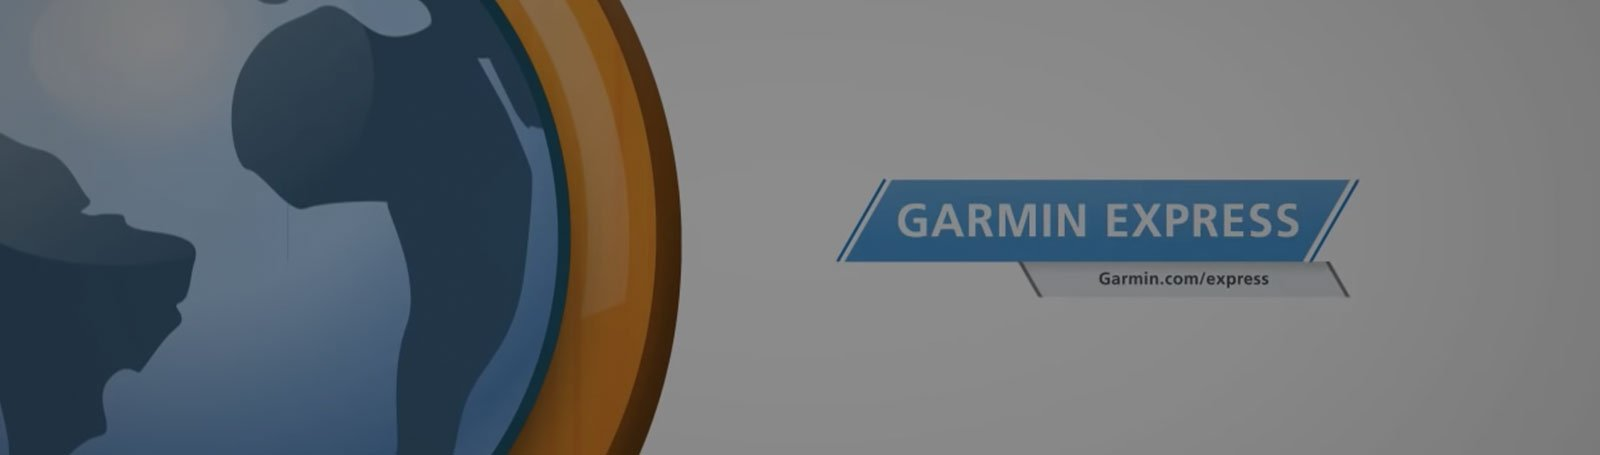 Come installare Garmin Express